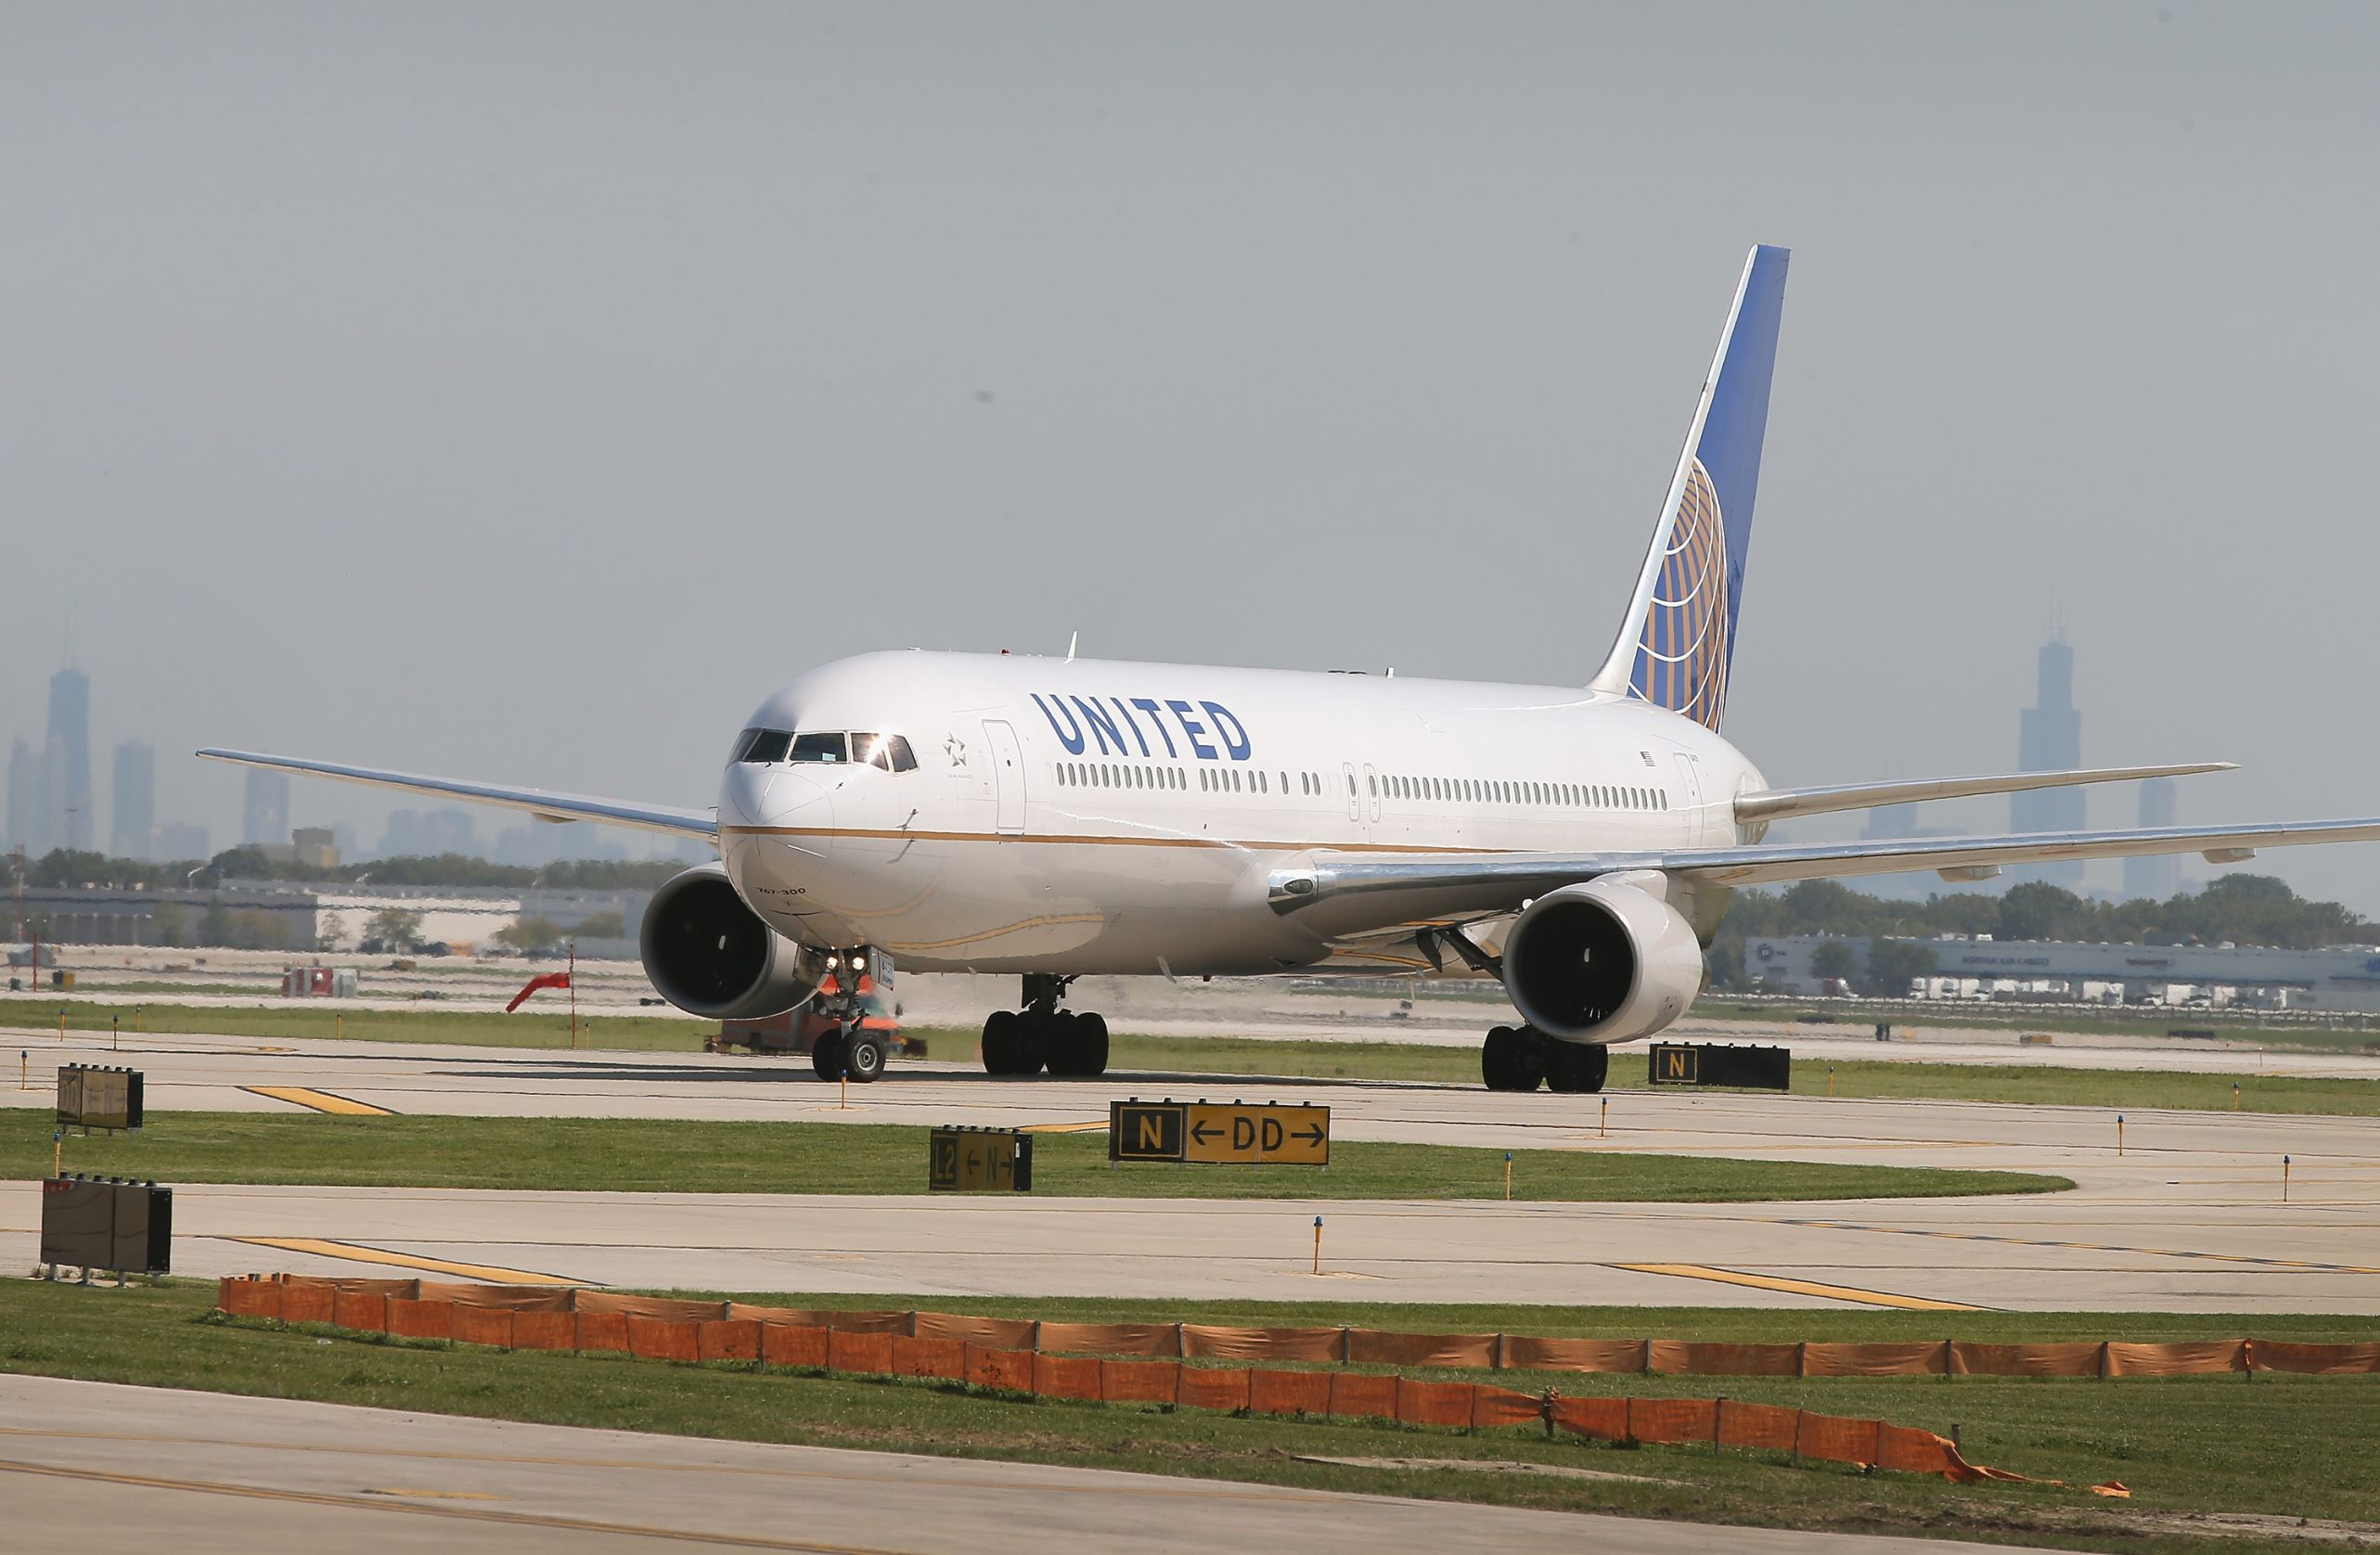 United Airlines Domestic Flights Grounded for 2 Hours by Computer Outage